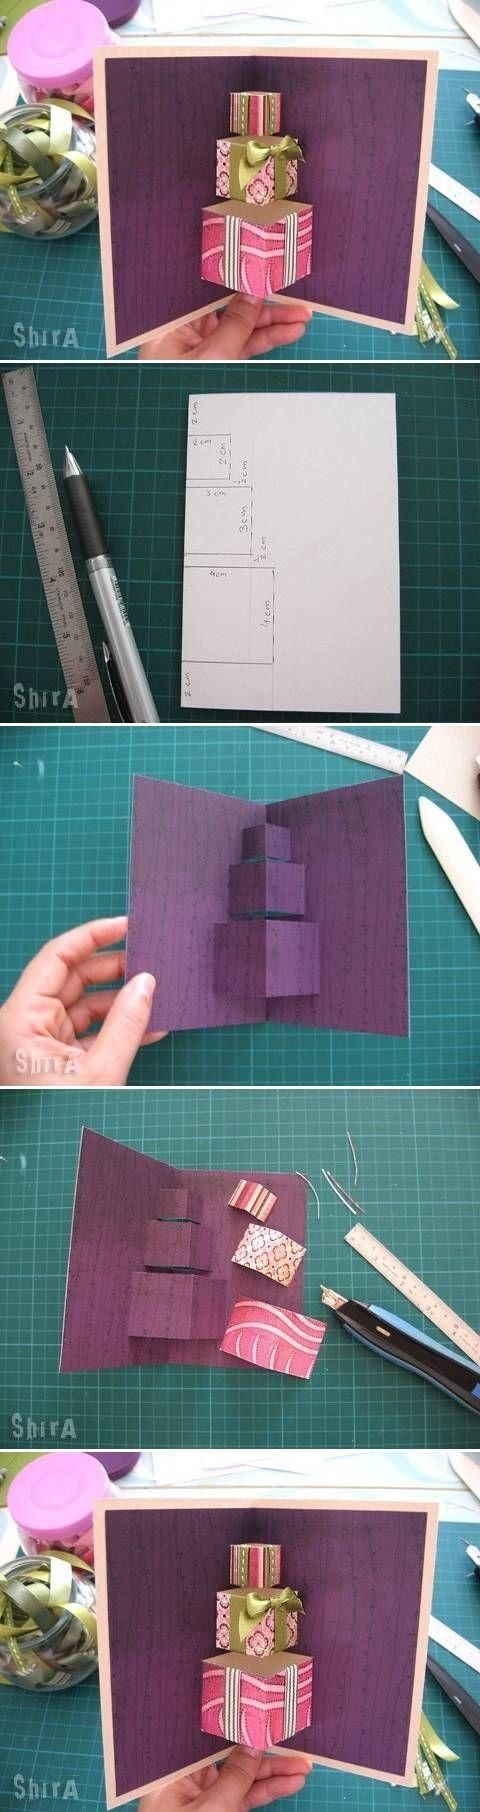 I've made these before and while they are a bit tricky they are fun and exciting to open.: